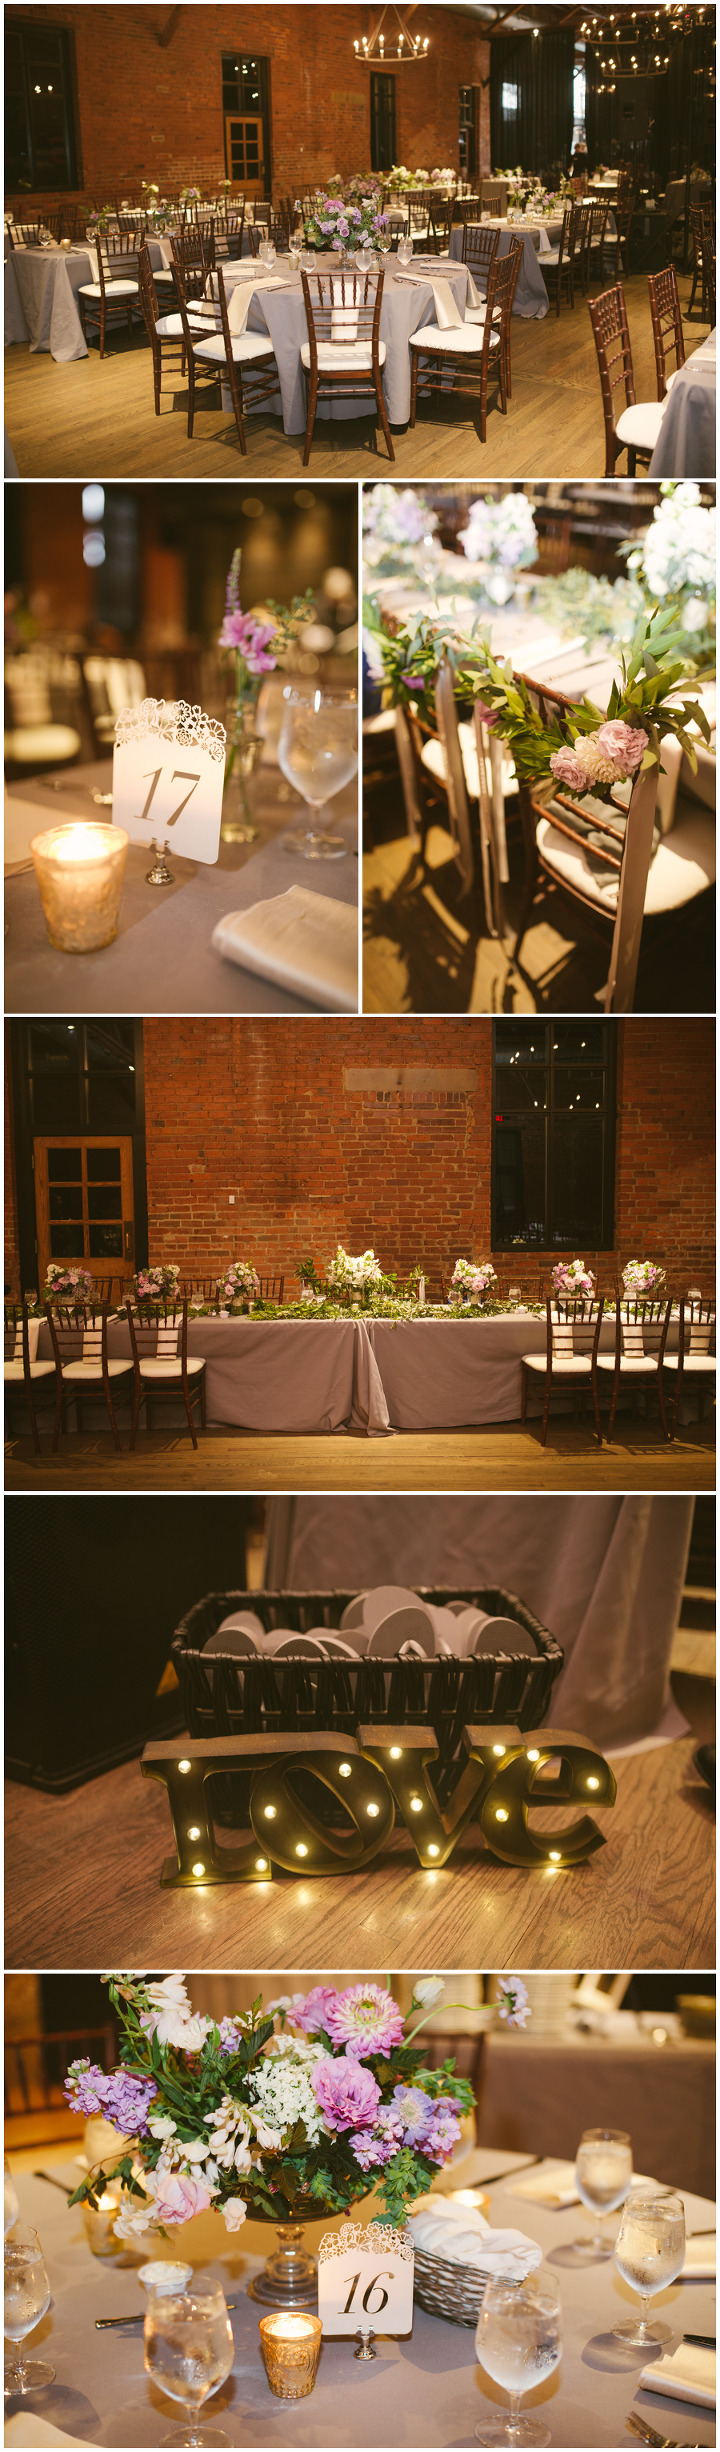 Wedding reception details High Line Car House Columbus Ohio